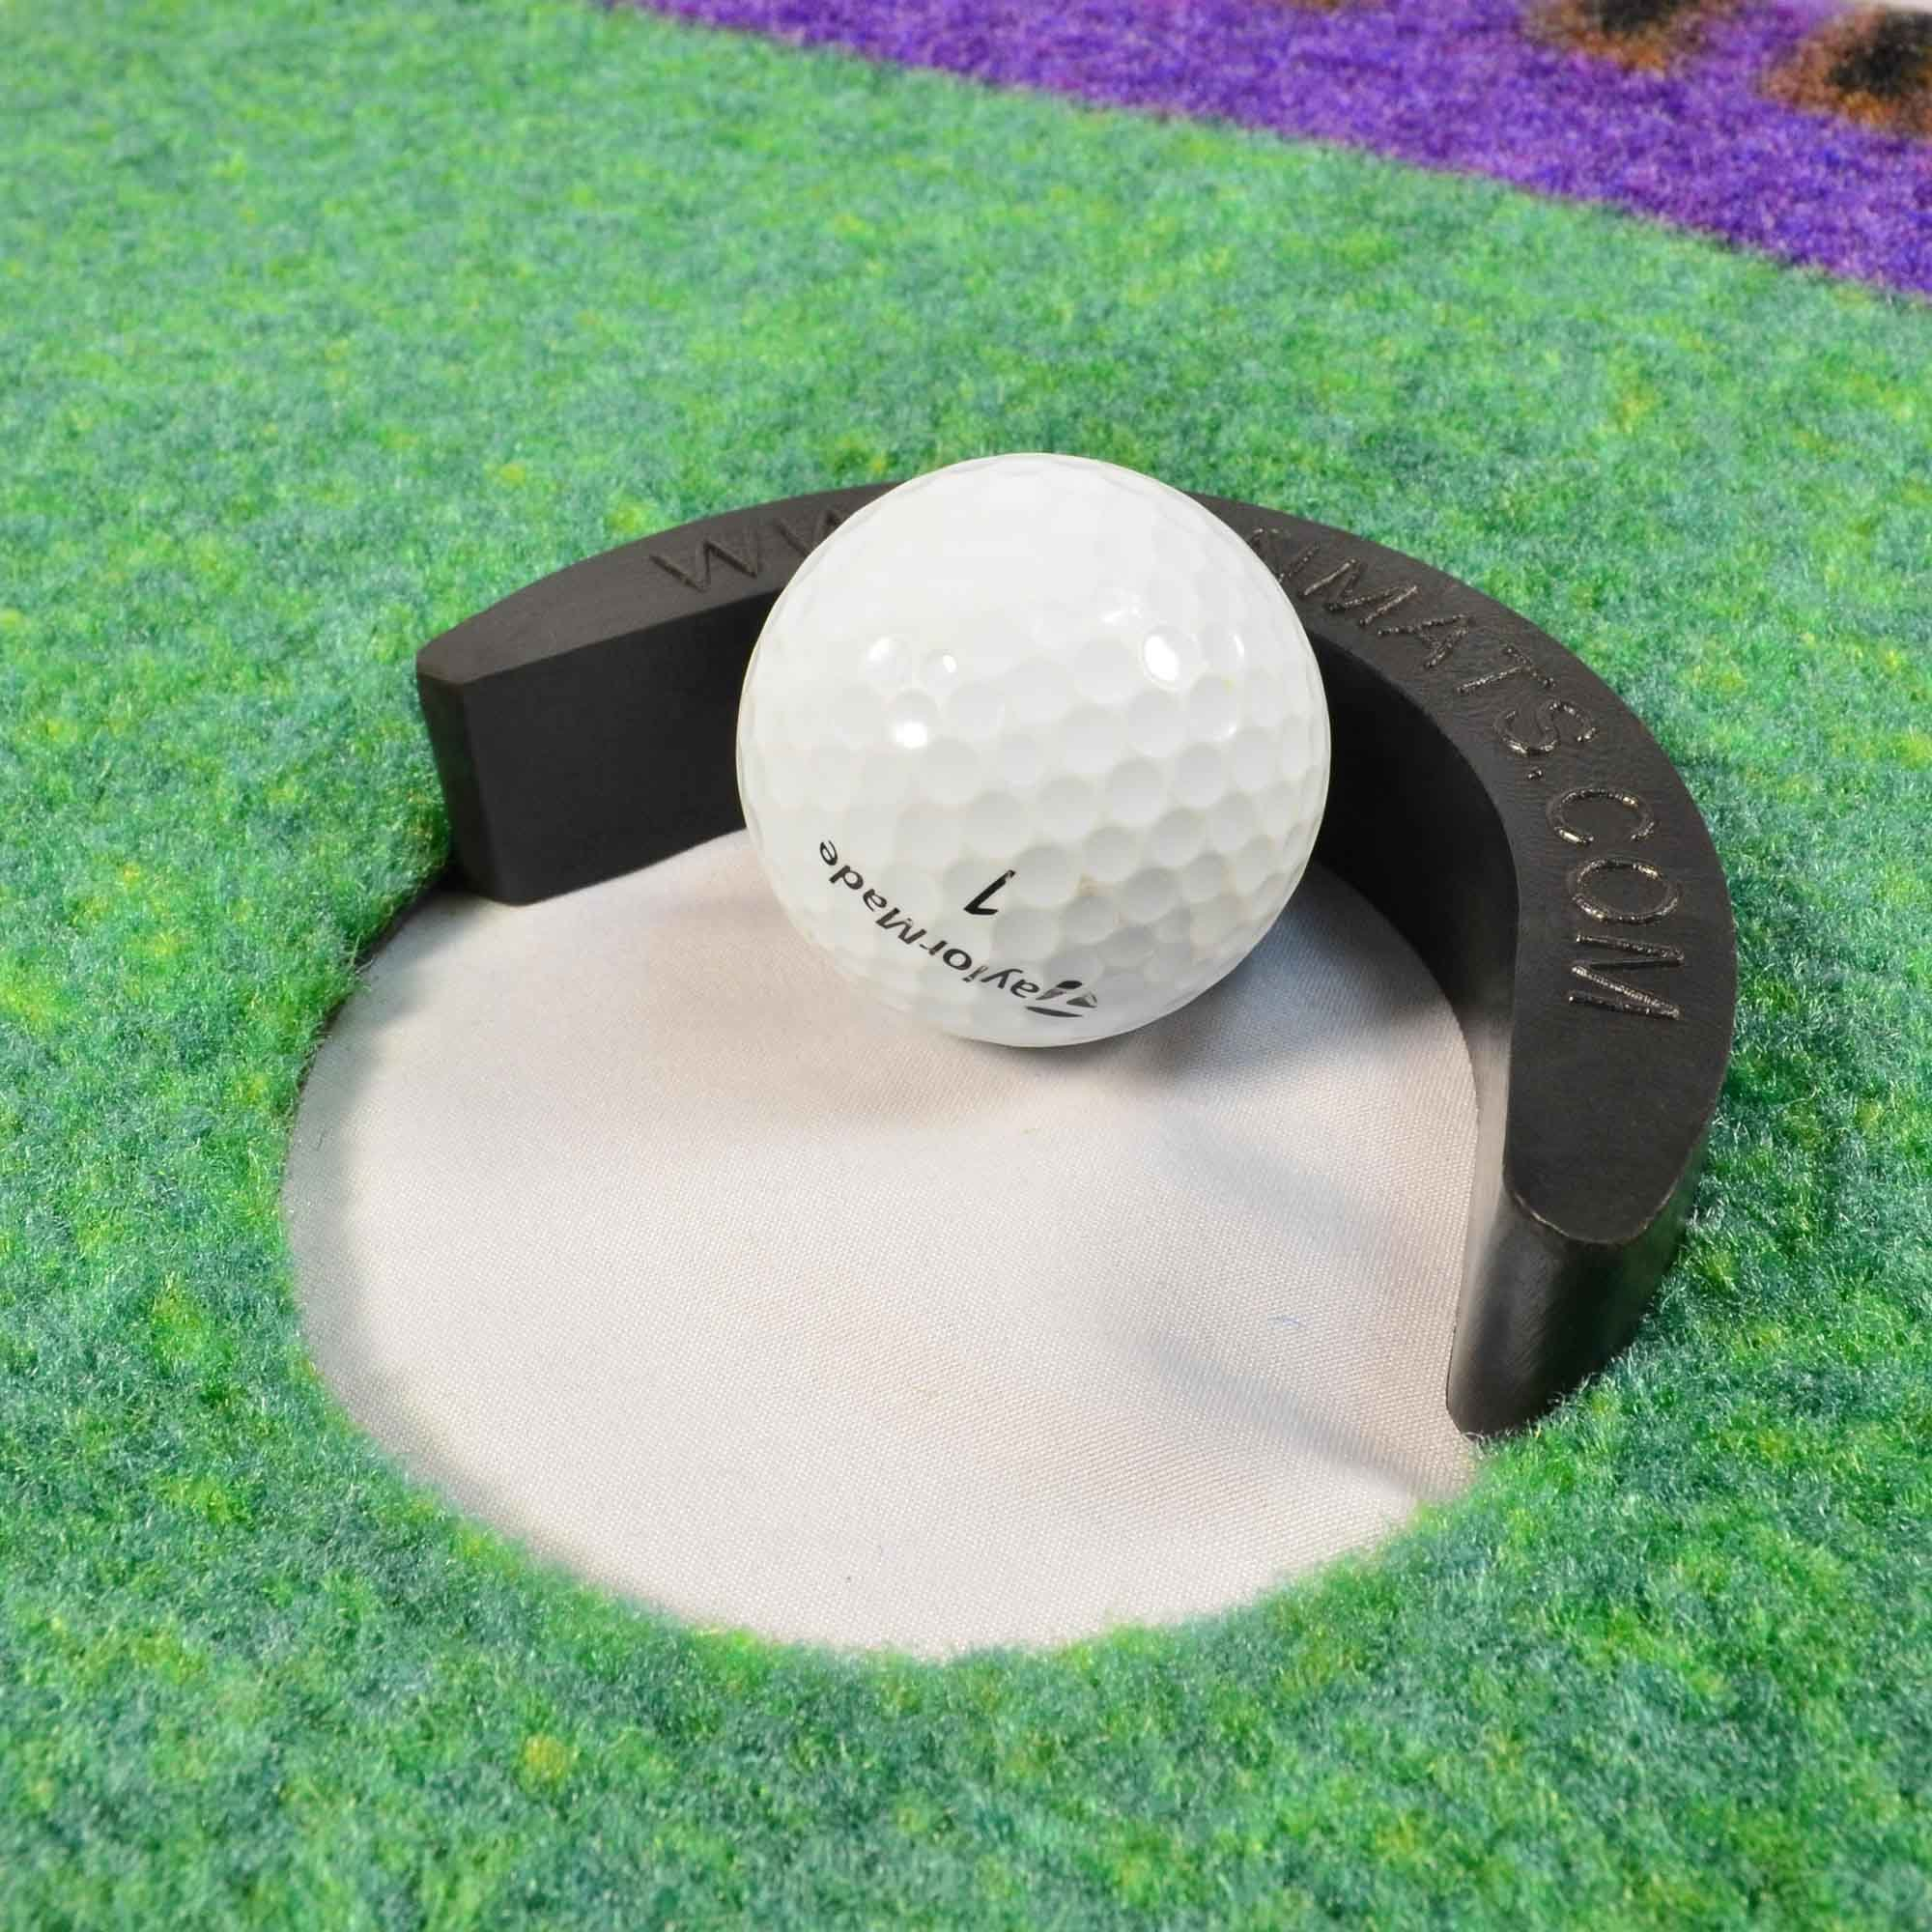 NCAA University of Arkansas Razorbacks Putting Green Mat Golf Accessory by Unknown (Image #3)